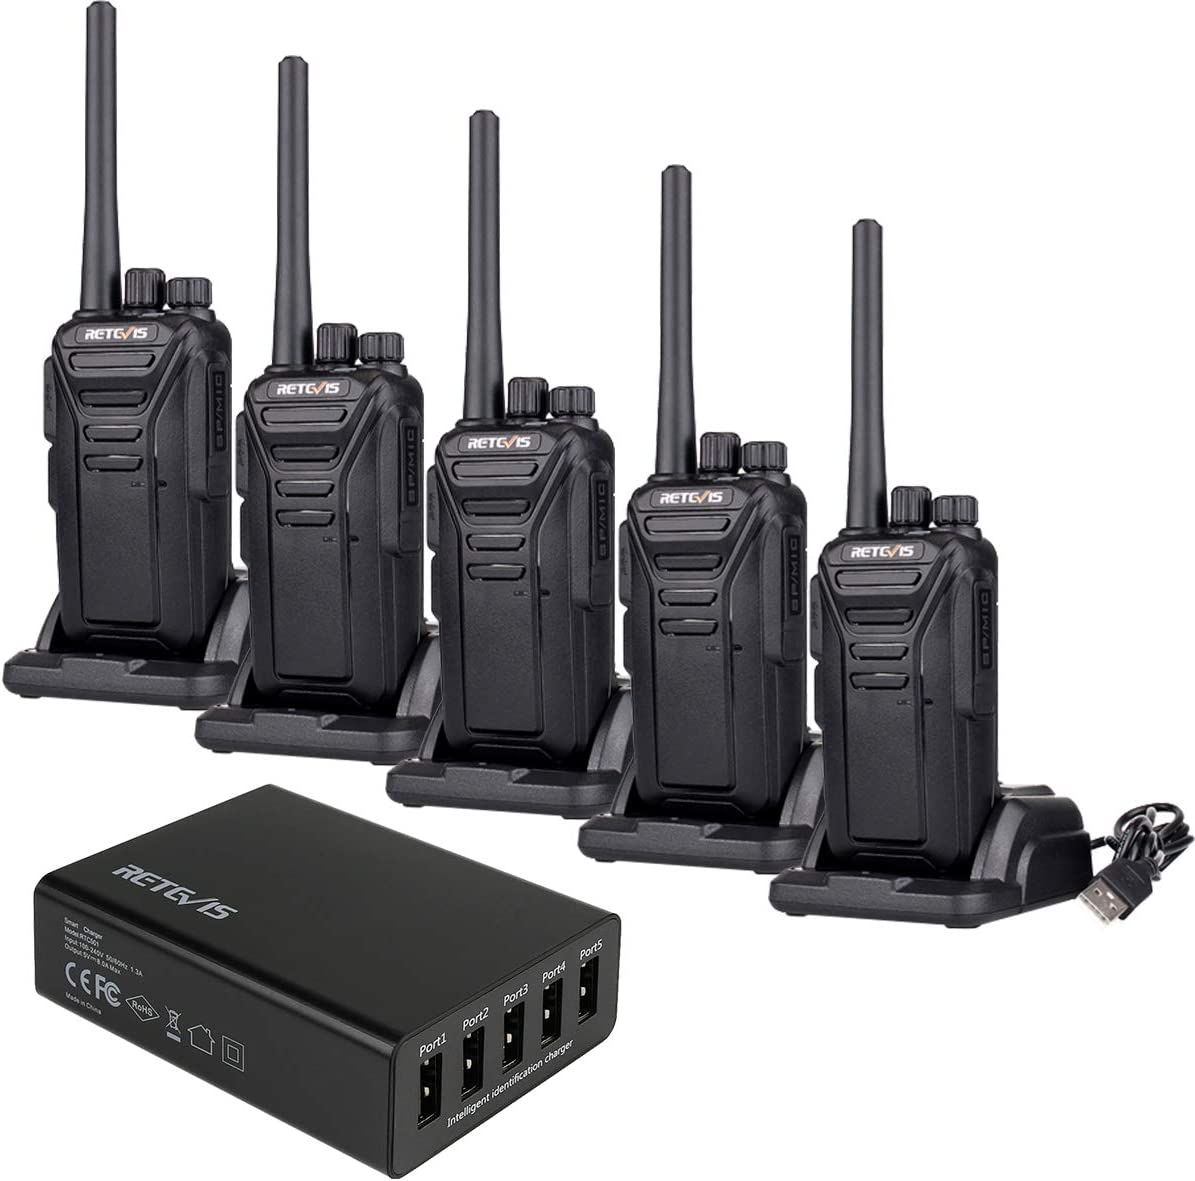 Retevis RT27 2 Way Radio Walkie Talkies Long Range Adult 22 CH VOX Business Rechargeable Two Way Radio with 5 Port USB Charger 5 Pack